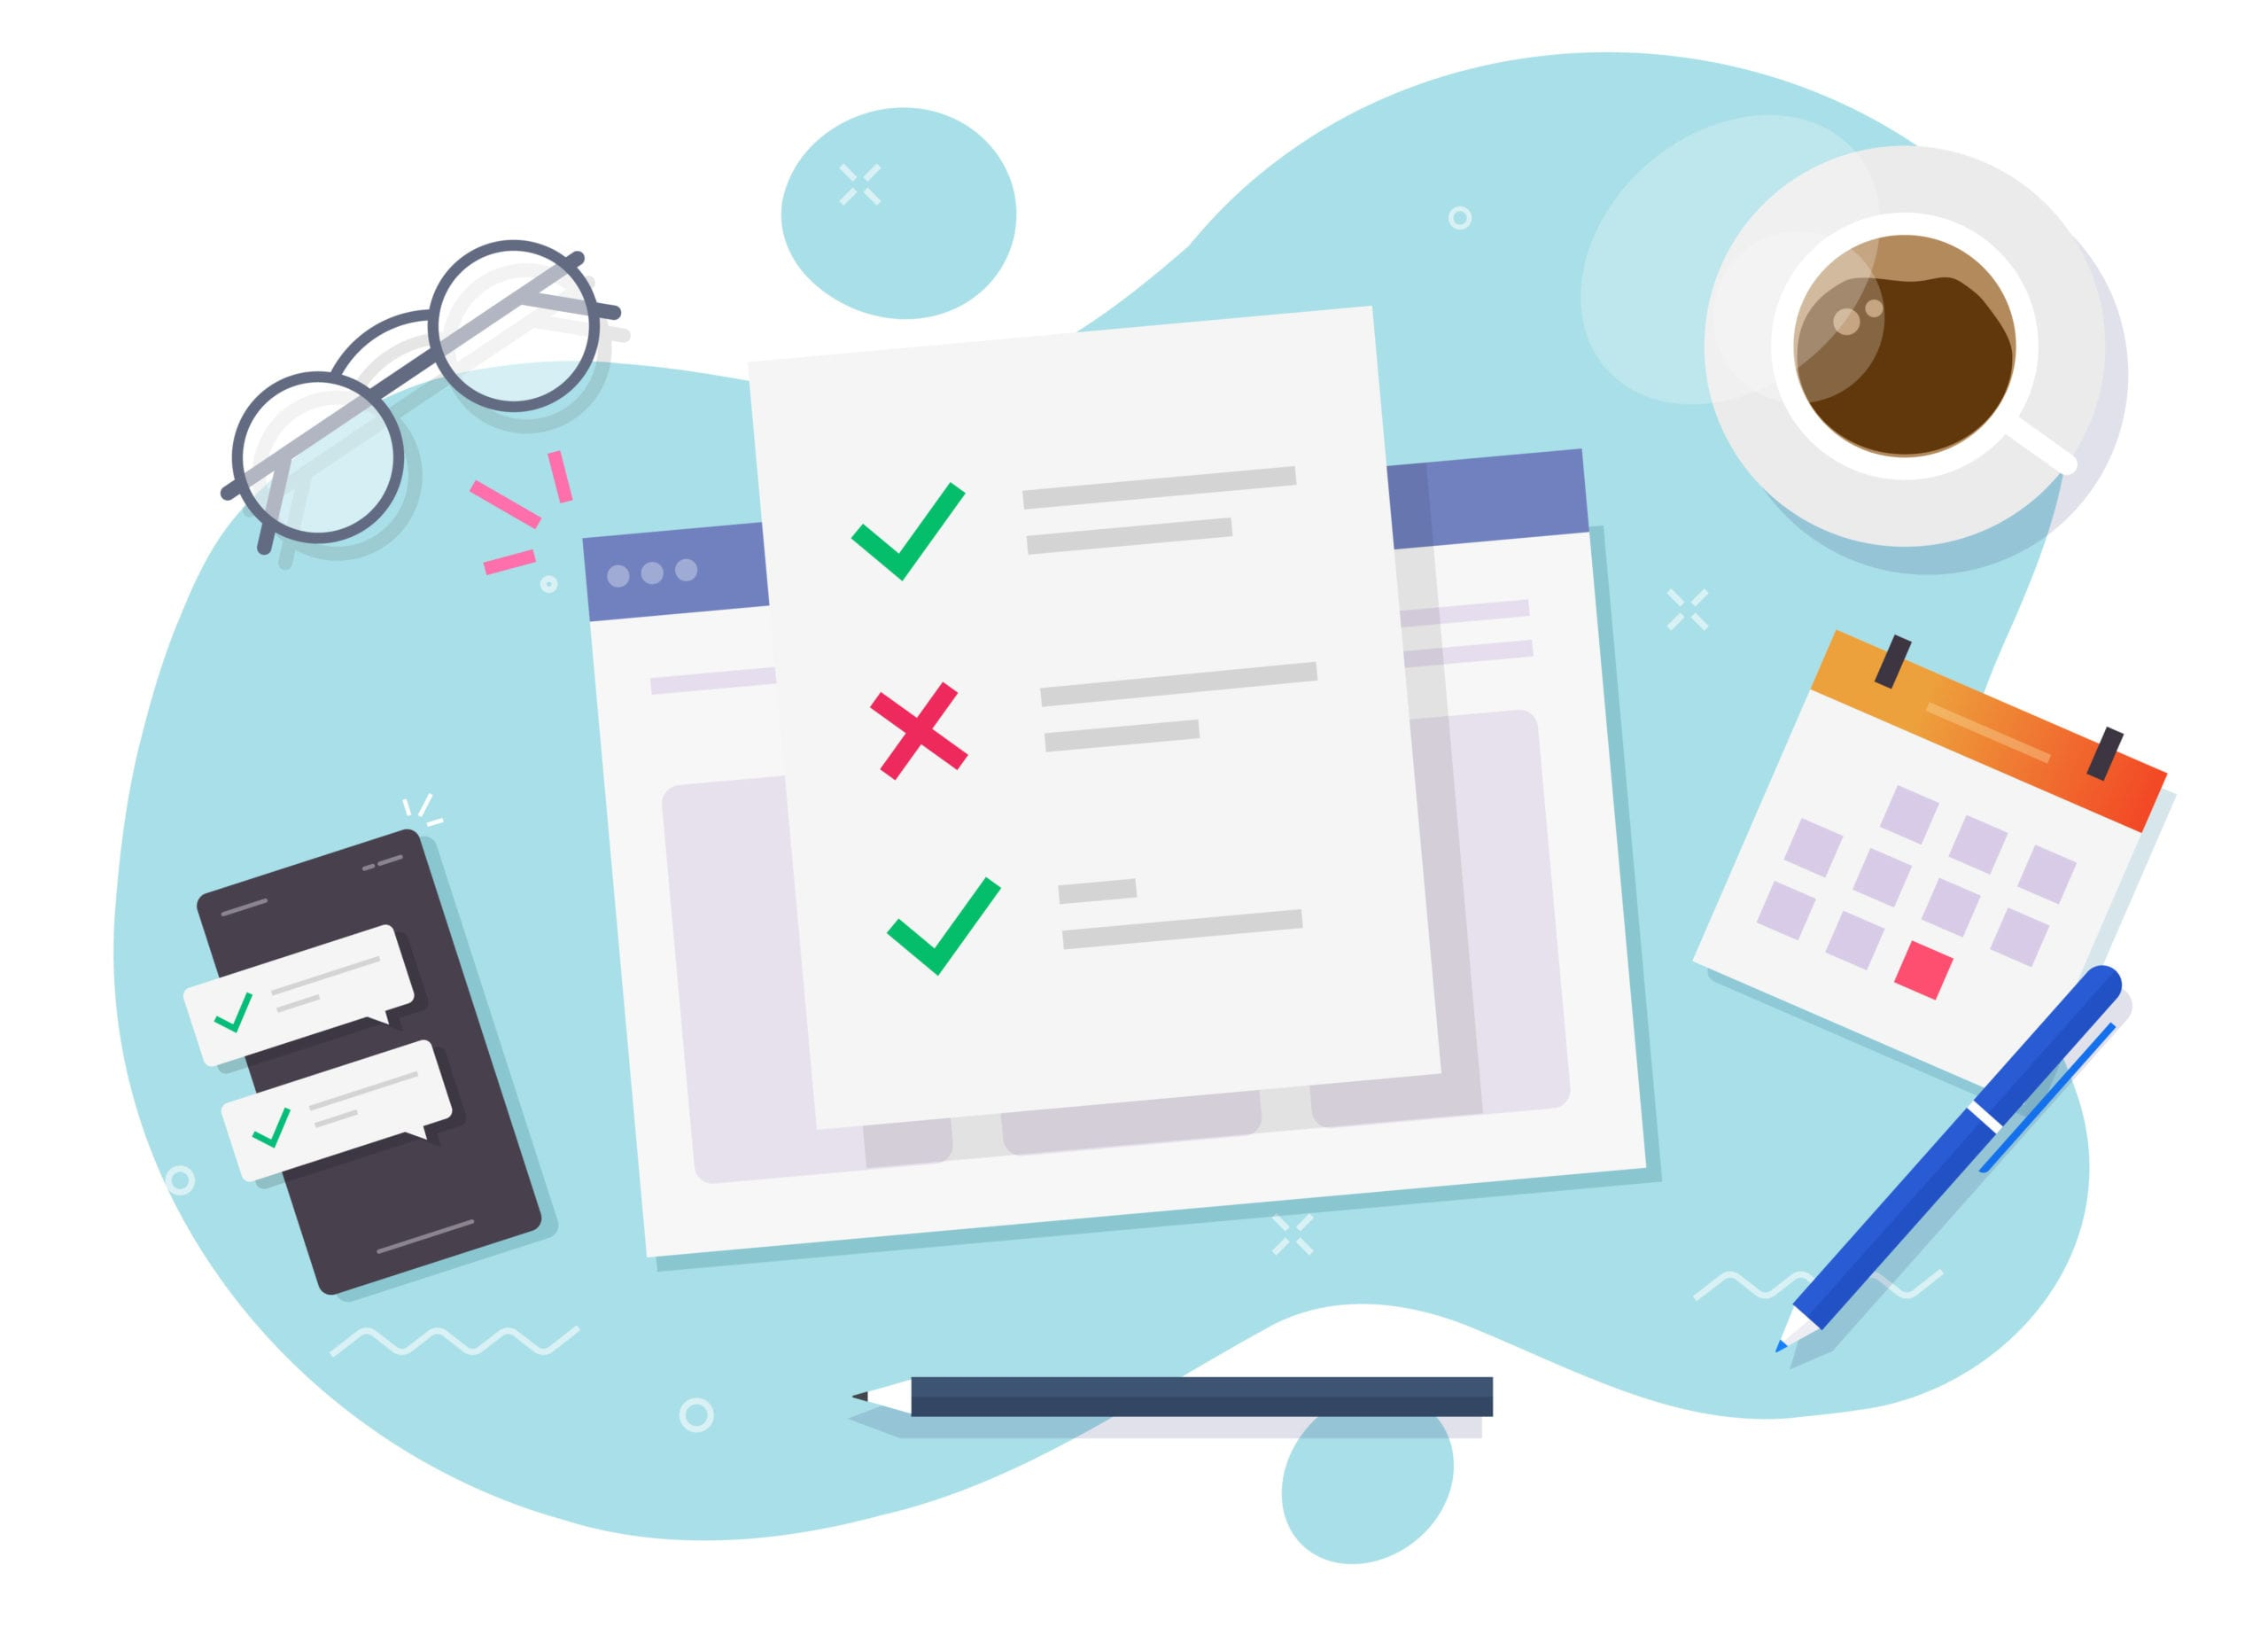 Survey form online check list document on study workplace or website learning exam results on table desk top view vector flat cartoon, web education work place concept, questionnaire report design